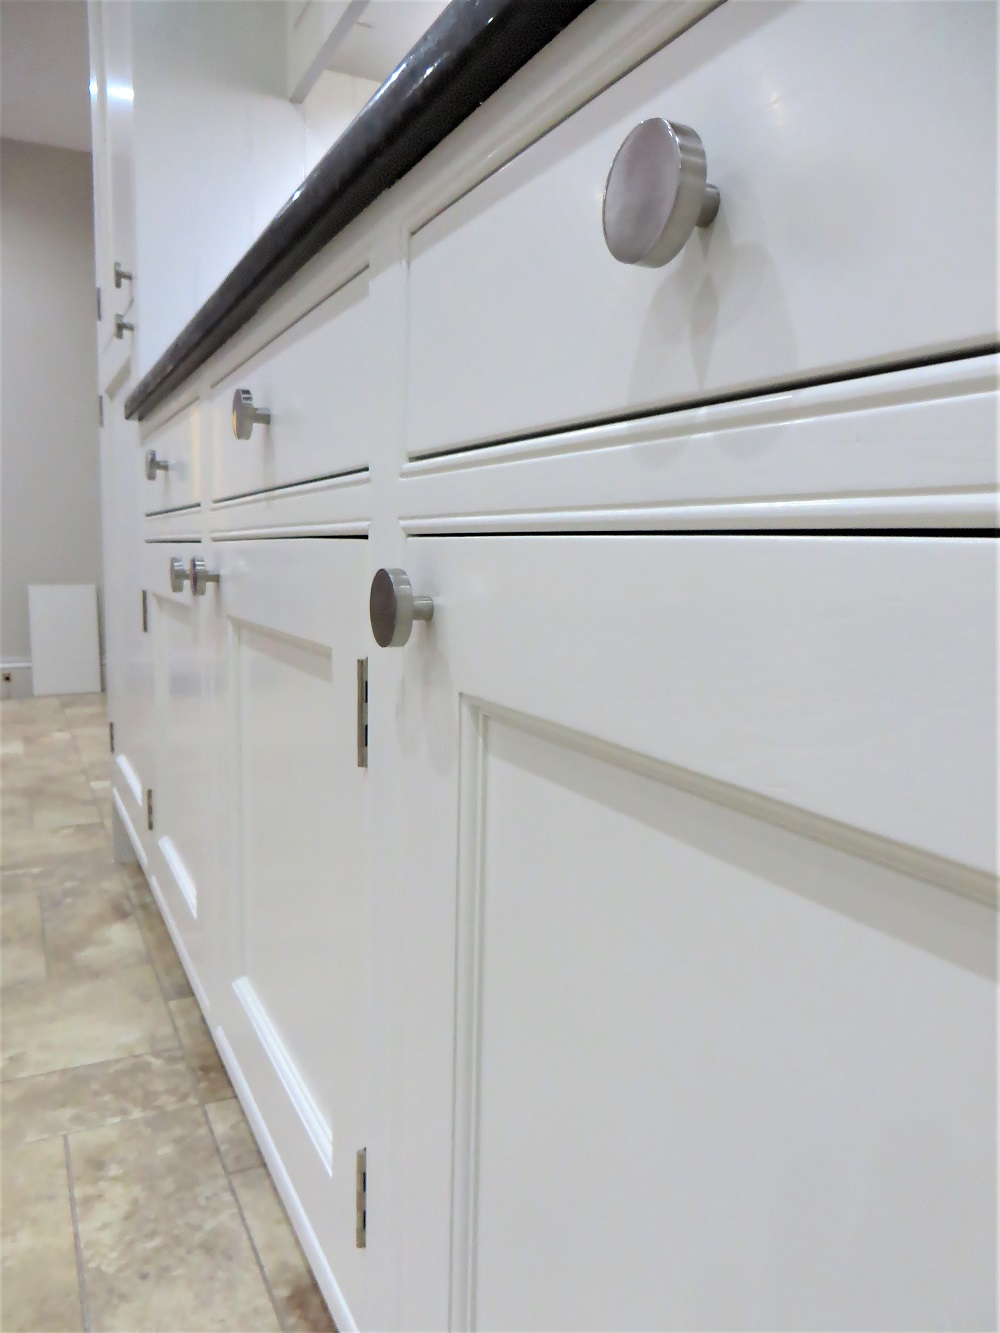 The new 'brushed satin' handles and hinges